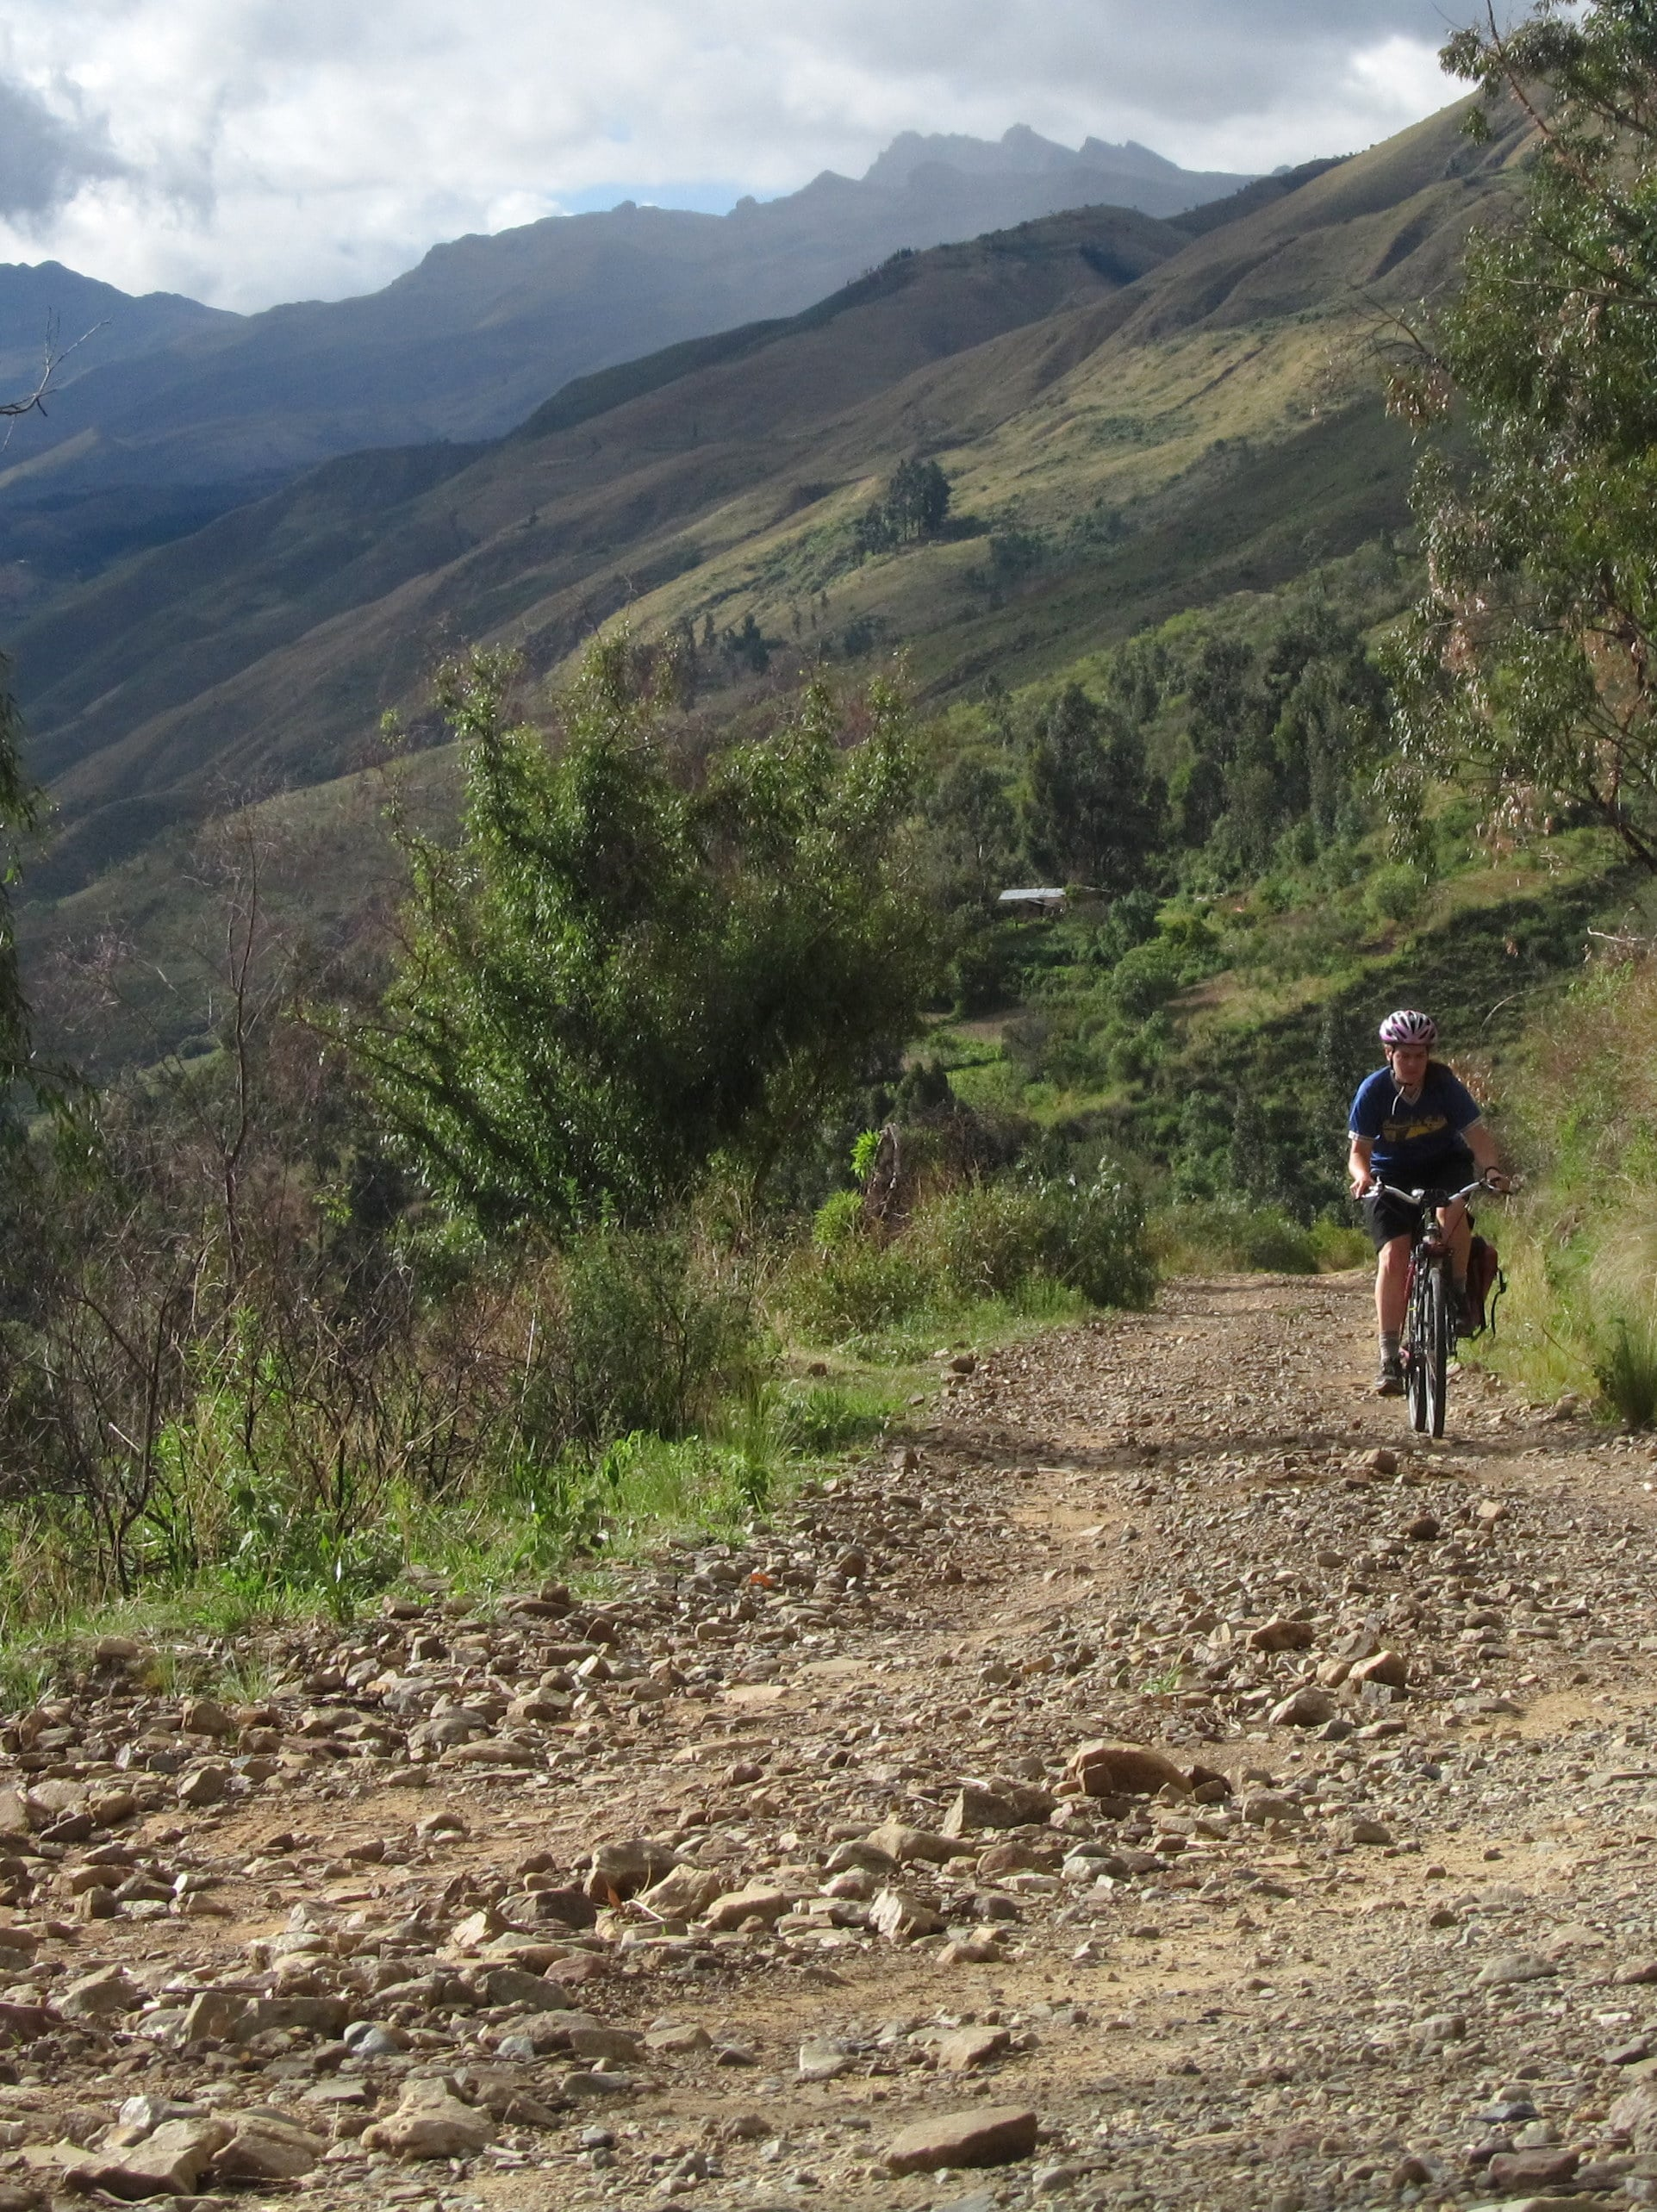 I creep up the dirt road, Tunari Mountain to my back and Cochabamba several thousand feet below.